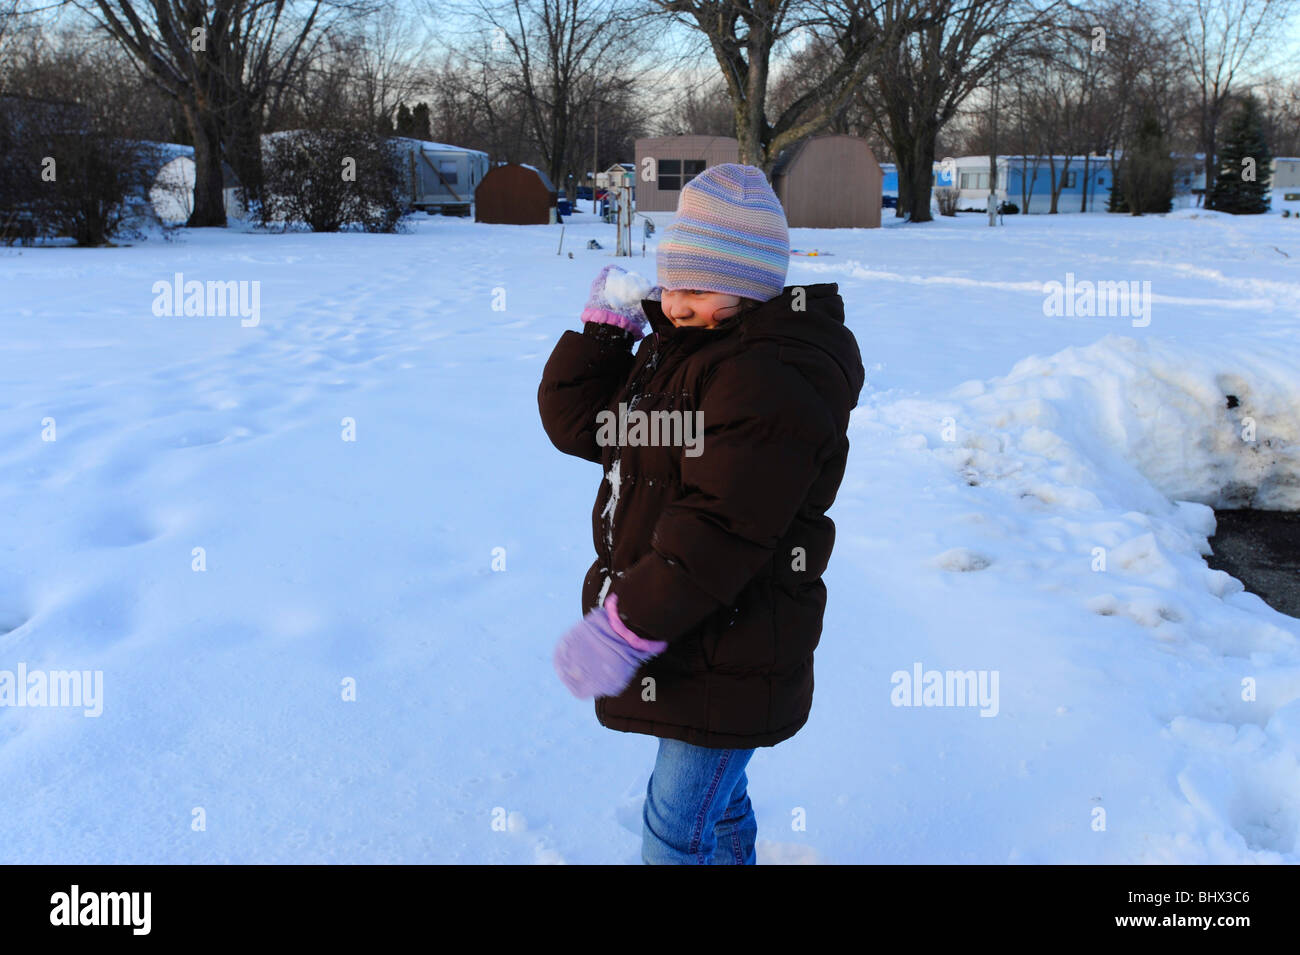 7 year old girl making and throwing snowball - Stock Image